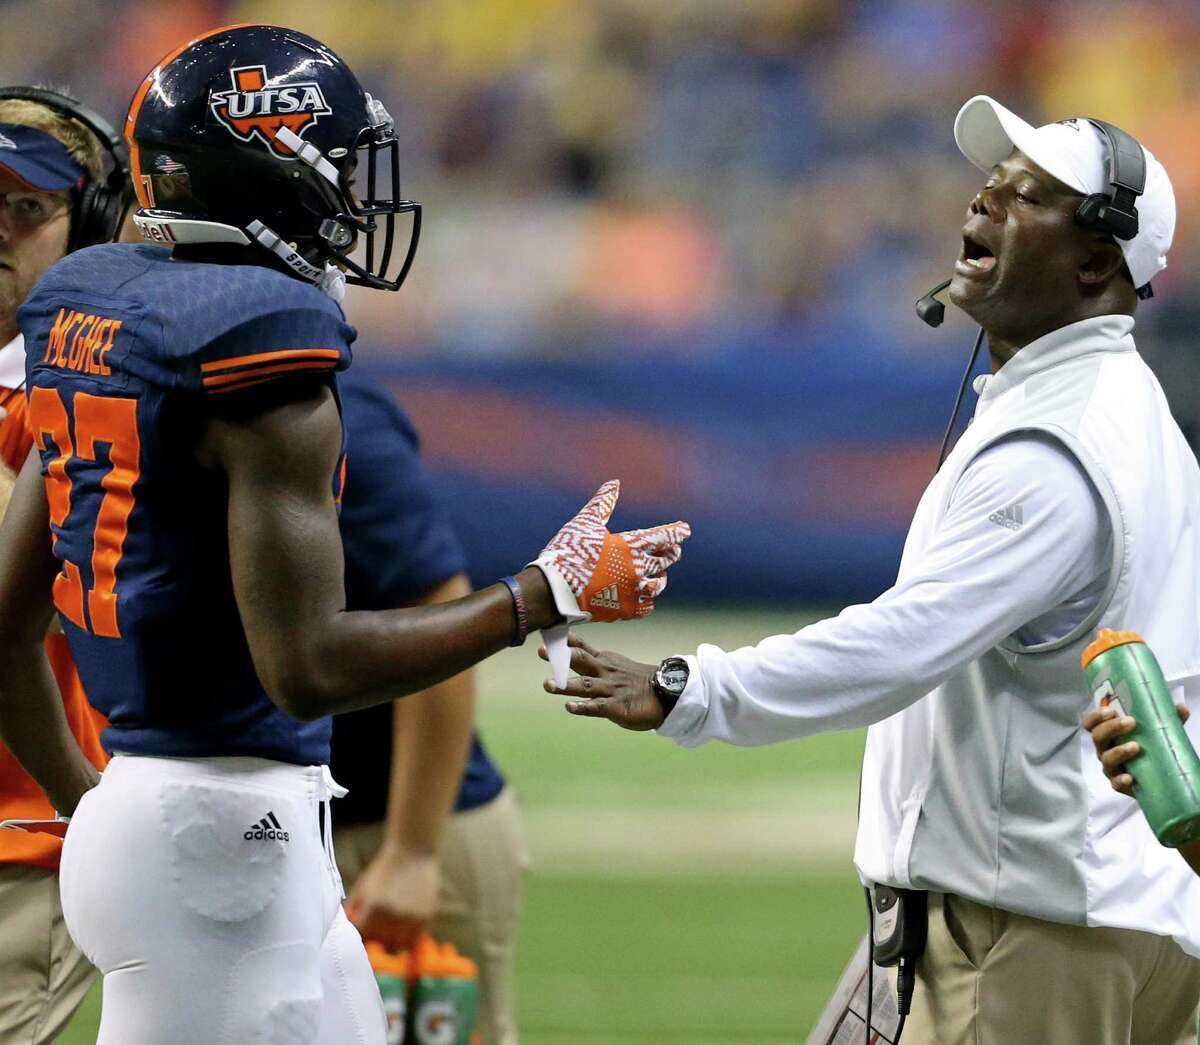 UTSA's Teddrick McGhee talks with coach Frank Wilson during a timeout in second-half action against Arizona State on Sept. 16, 2016 at the Alamodome.